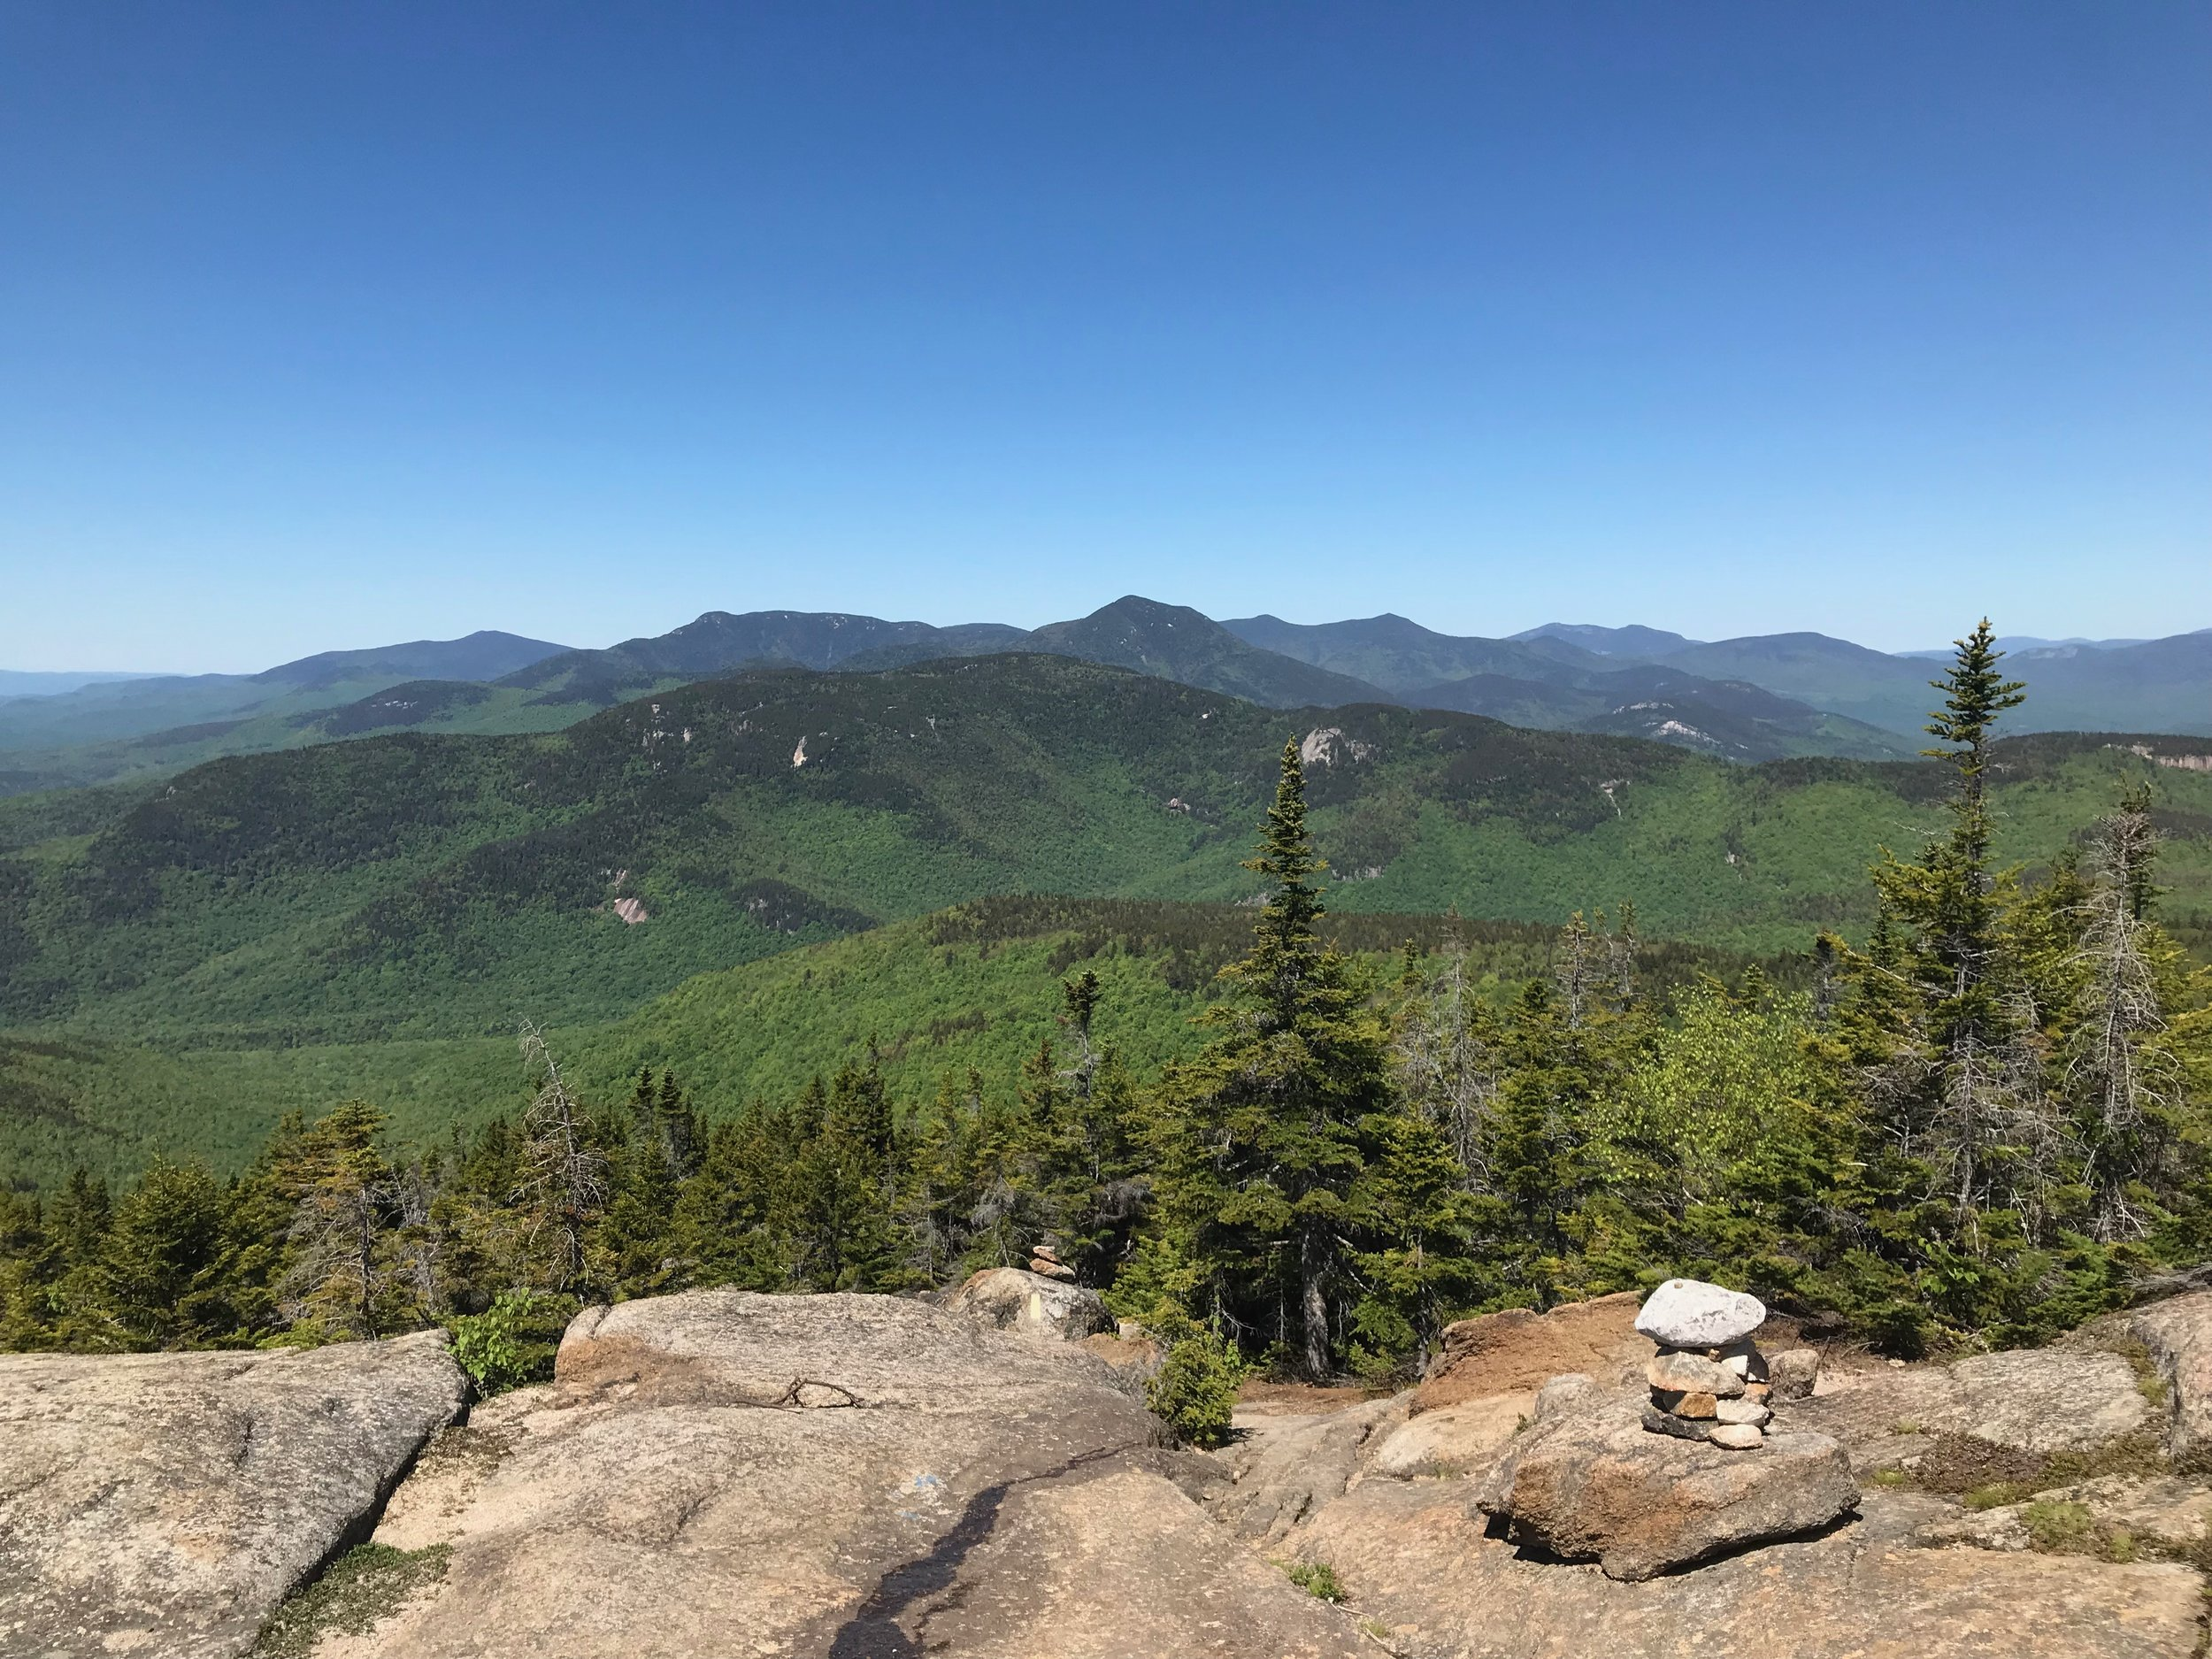 View from near the top of Mount Chocorua, looking toward the Sandwich Range. Photo: Juno Lamb